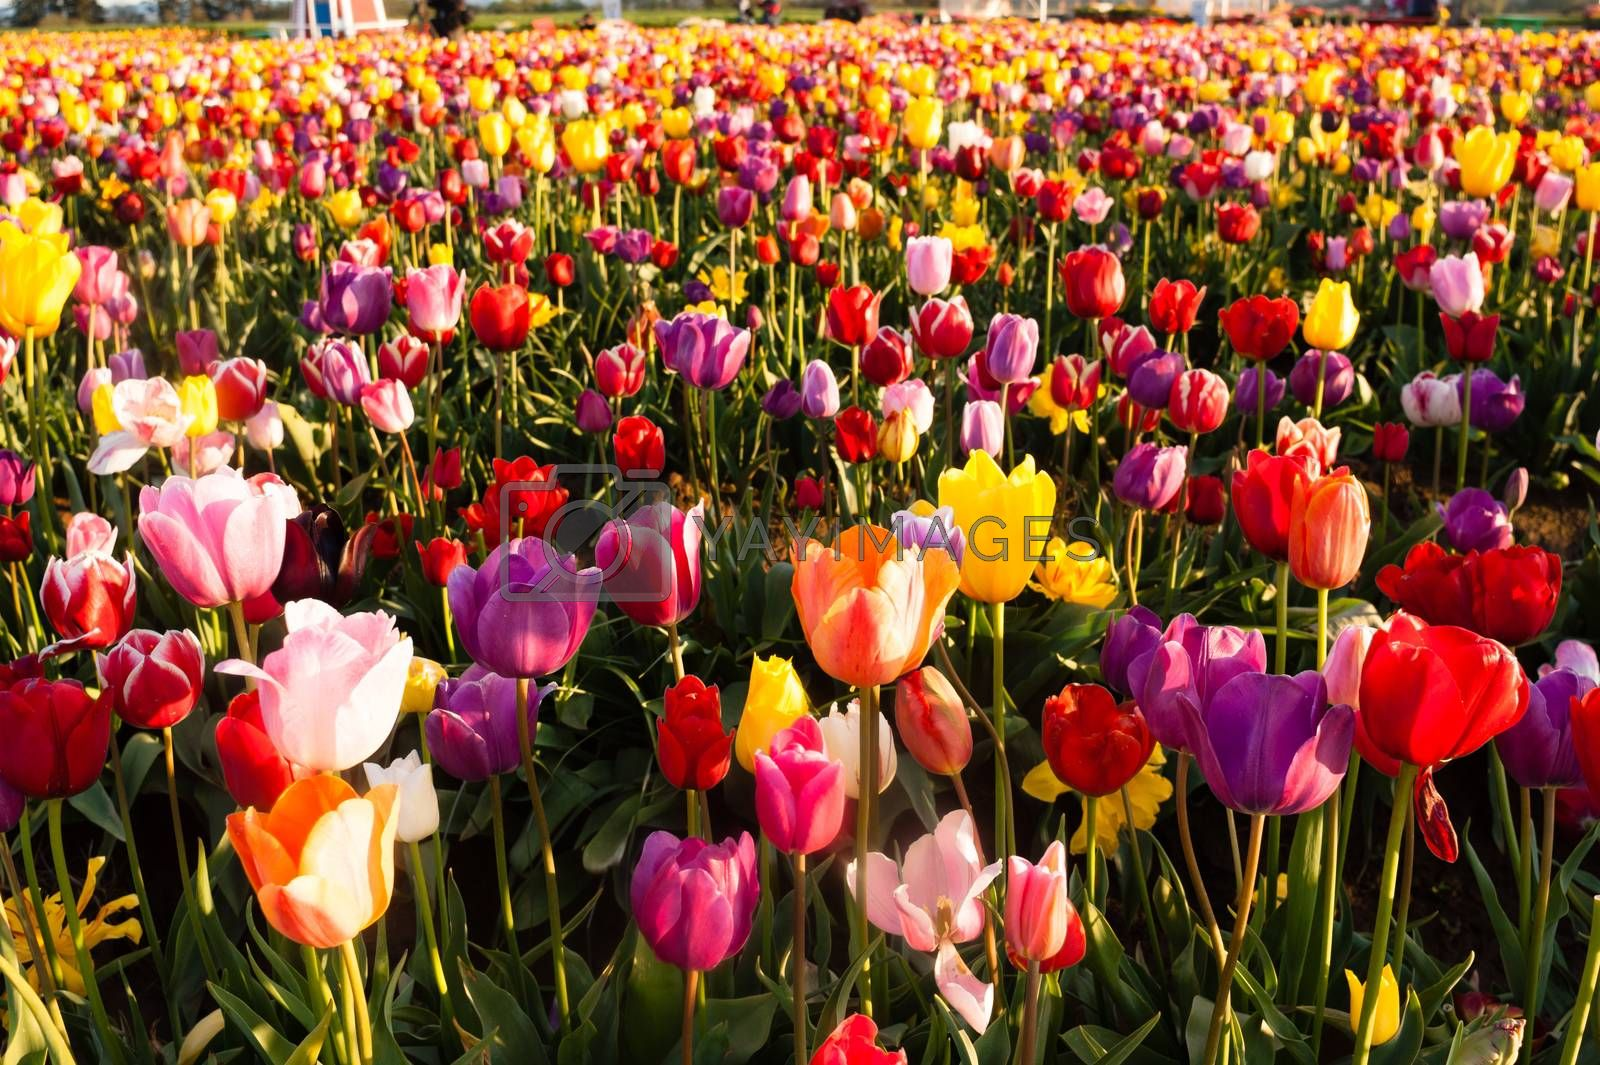 Royalty free image of Neat Rows Tulips Colorful Flower Petals Farmer's Bulb Farm by ChrisBoswell